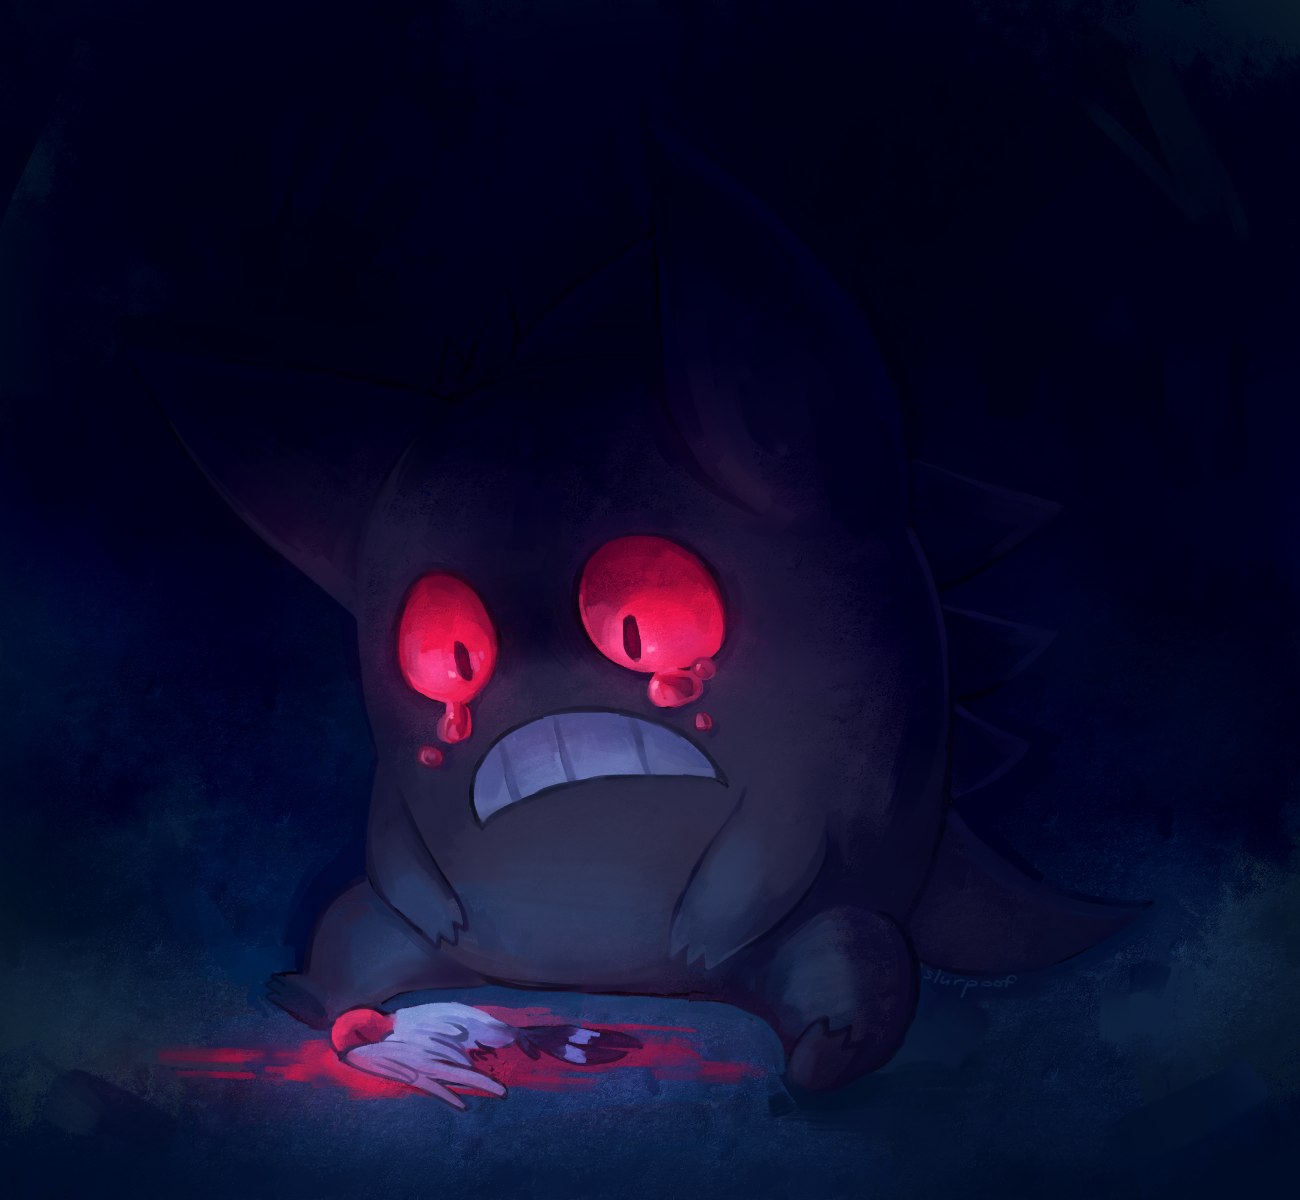 Gengar, the Shadow Pokemon by slurpoof on DeviantArt